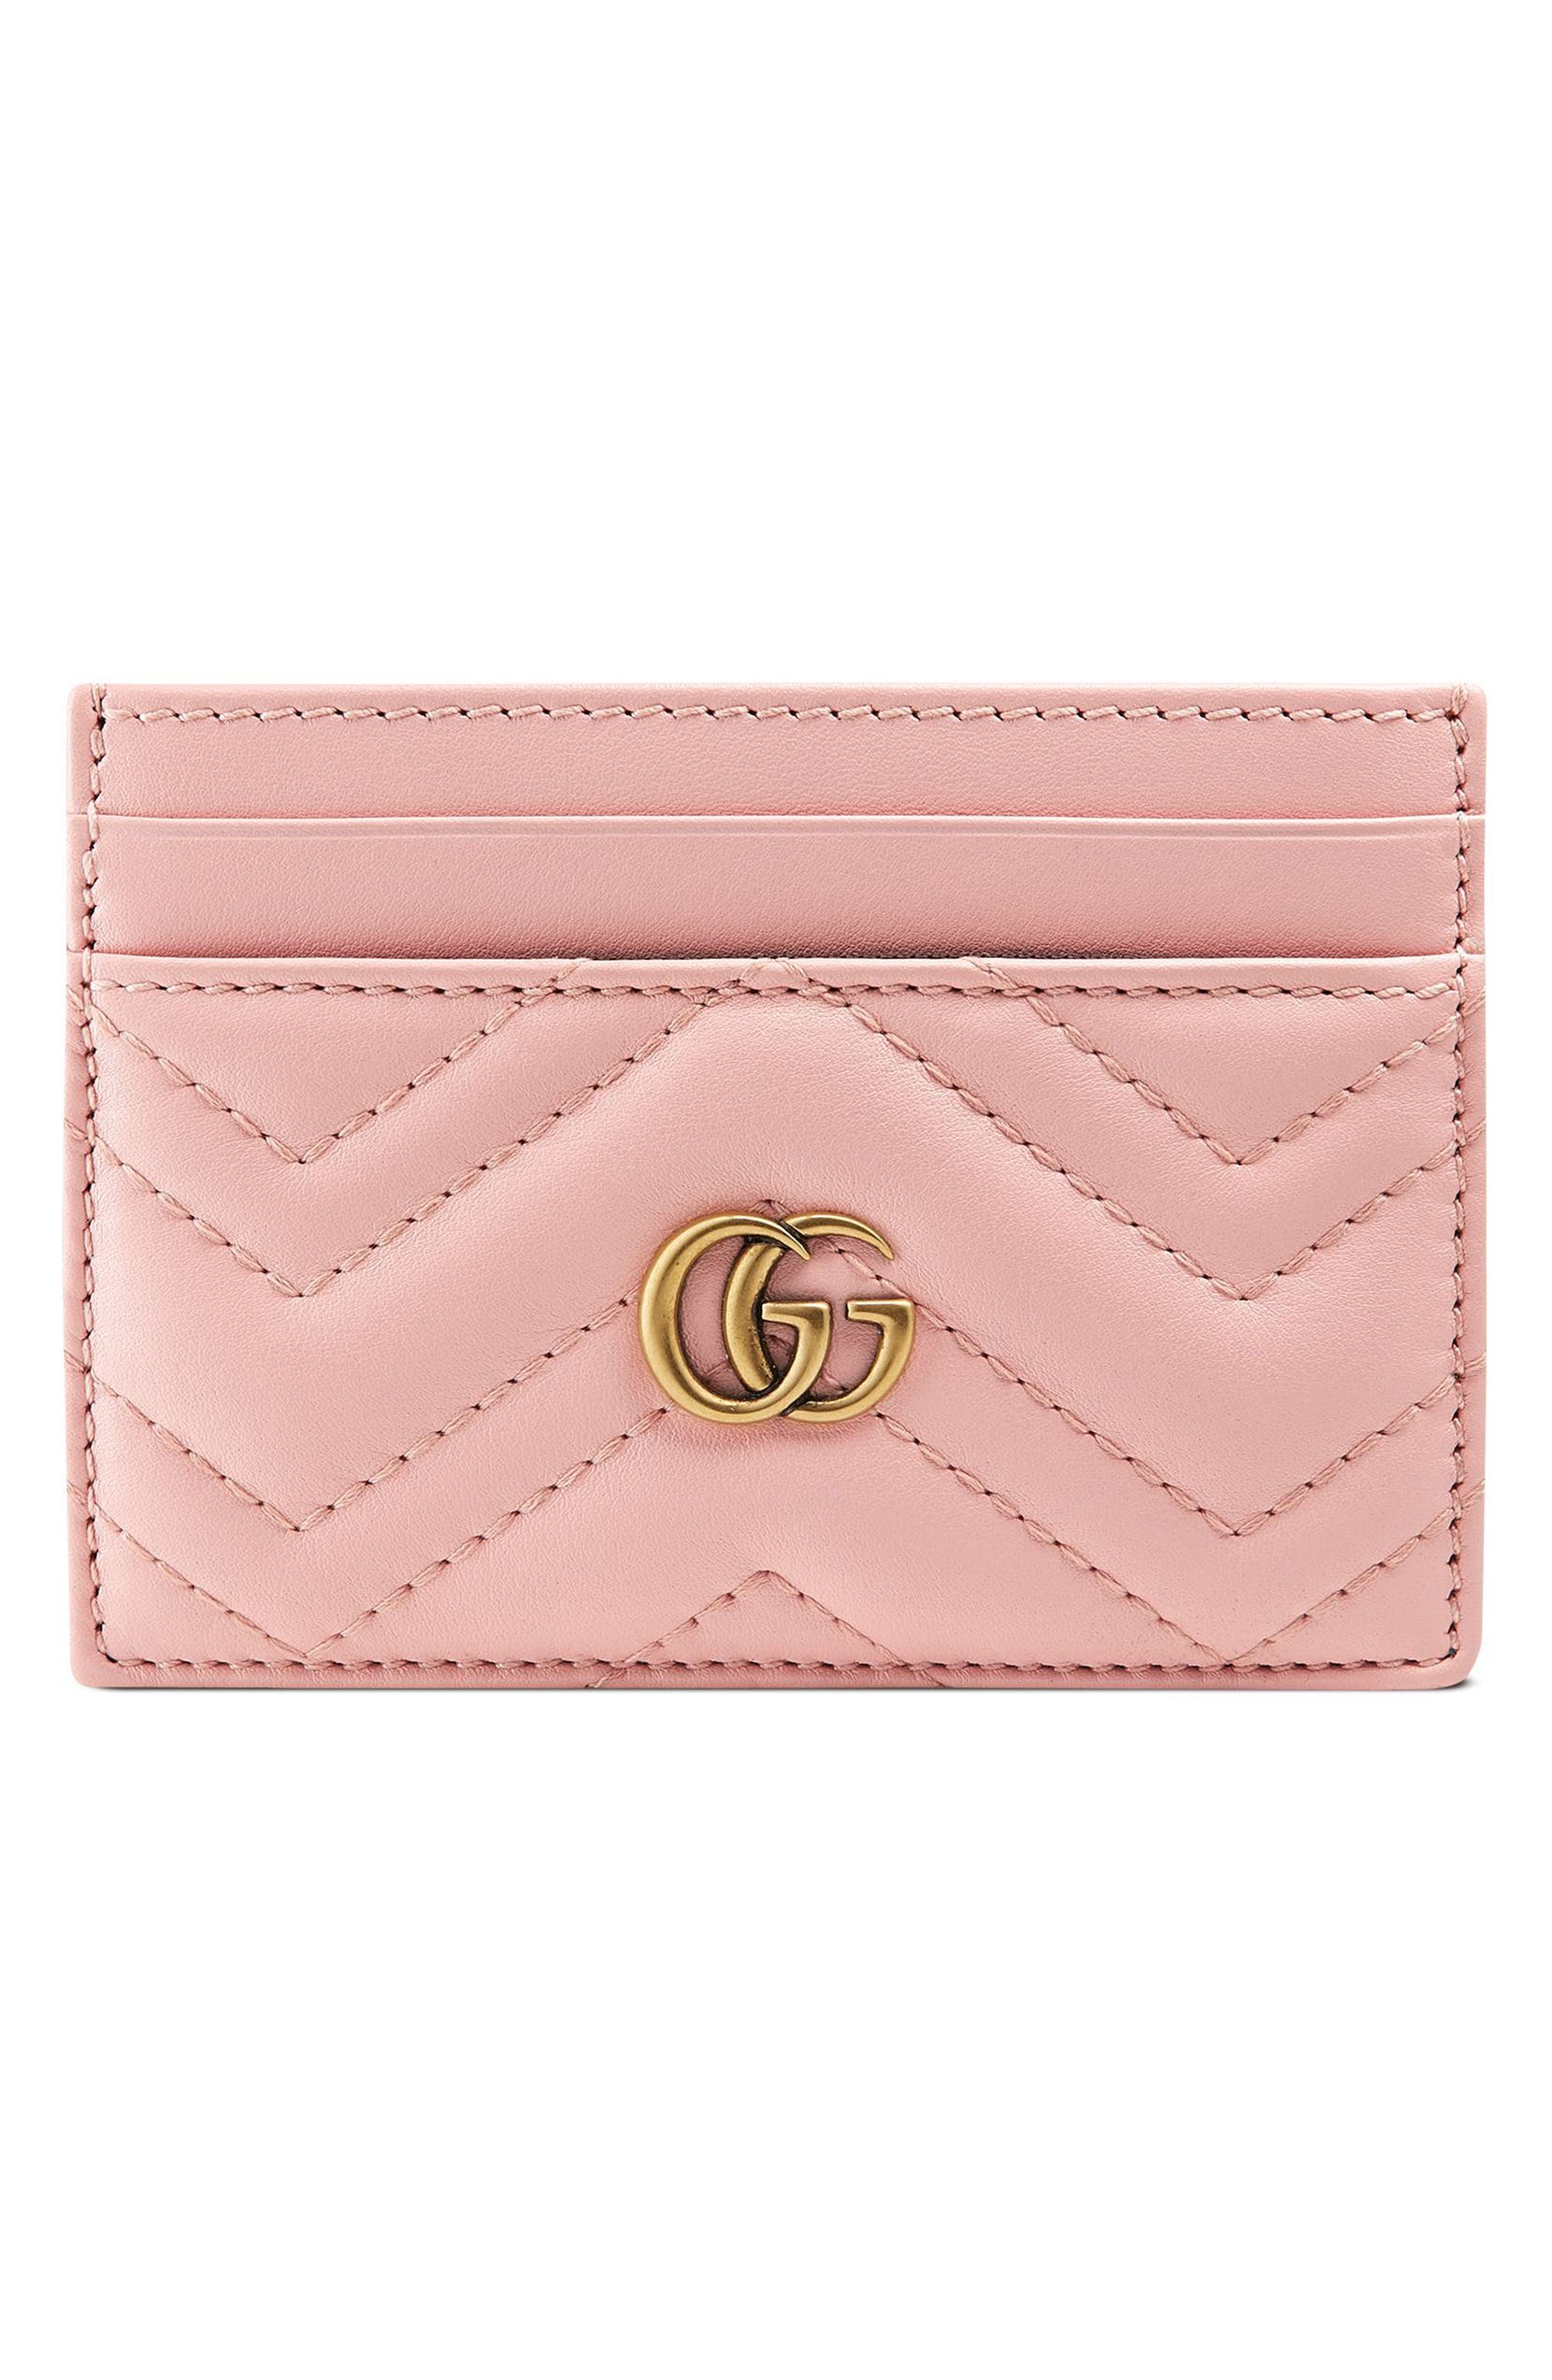 8be4c0e05a1a Gucci GG Marmont Matelassé Leather Card Case | Nordstrom